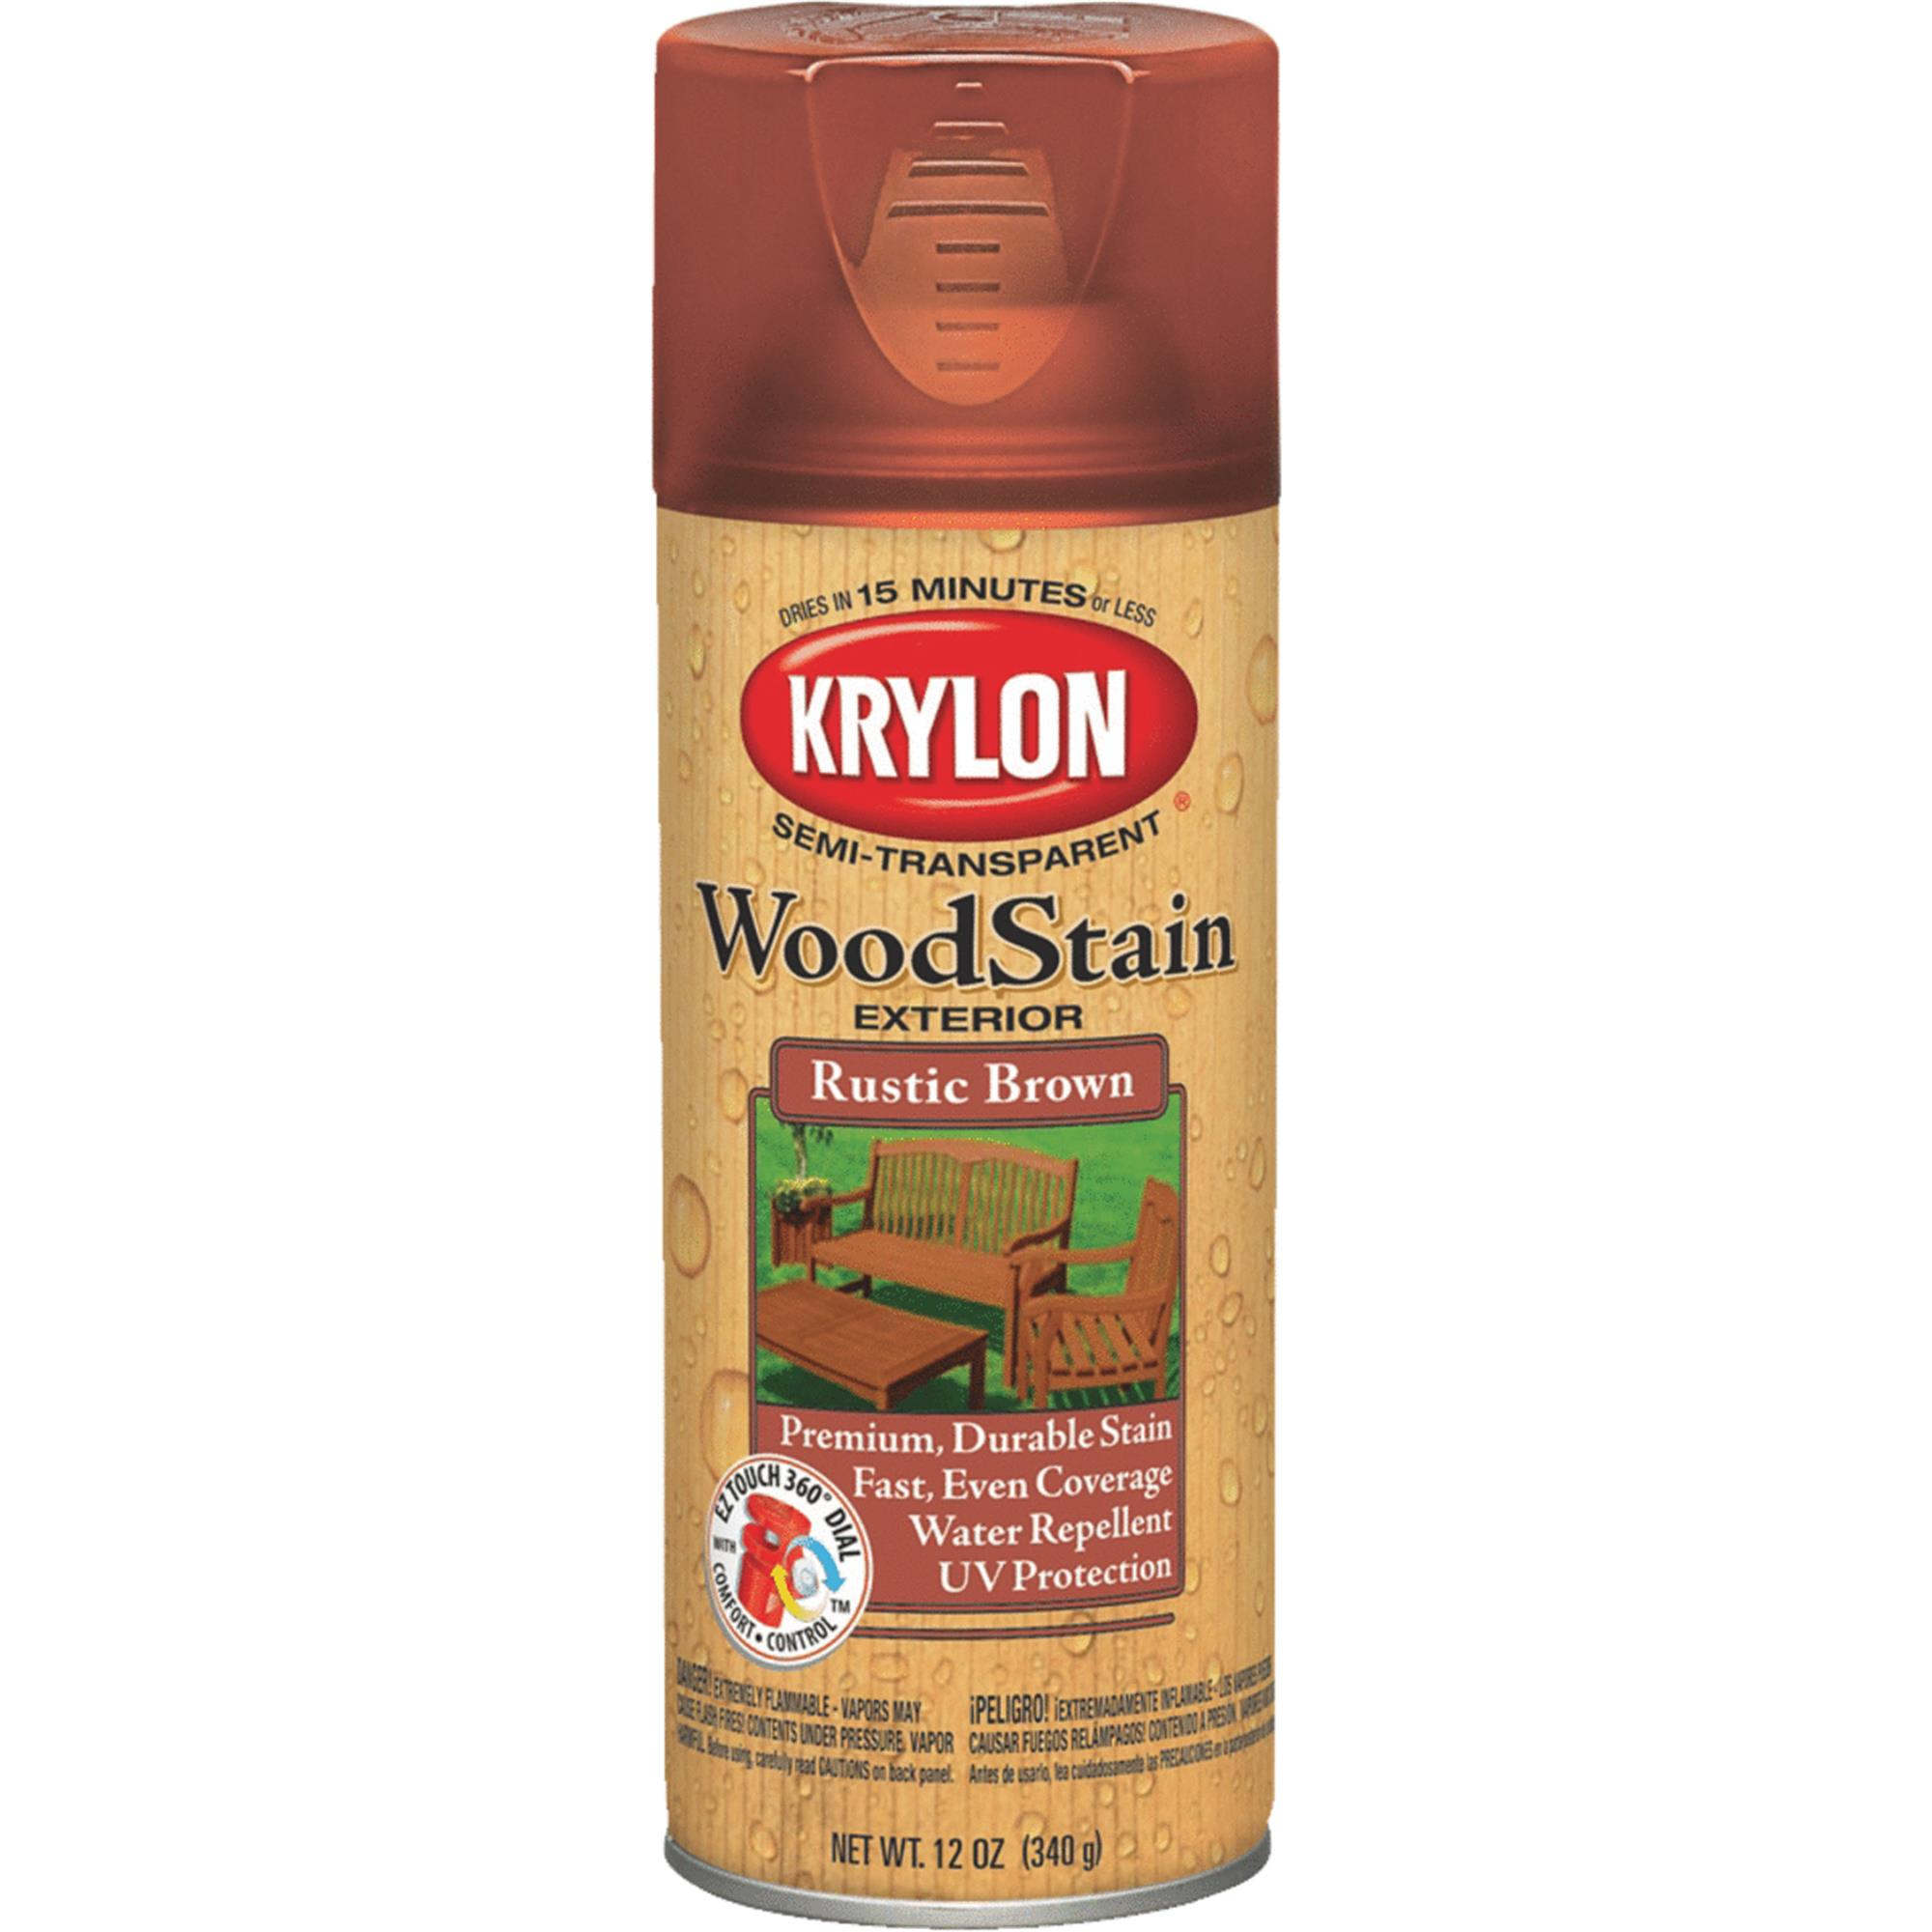 Krylon Exterior Semi-Transparent Wood Stain Spray